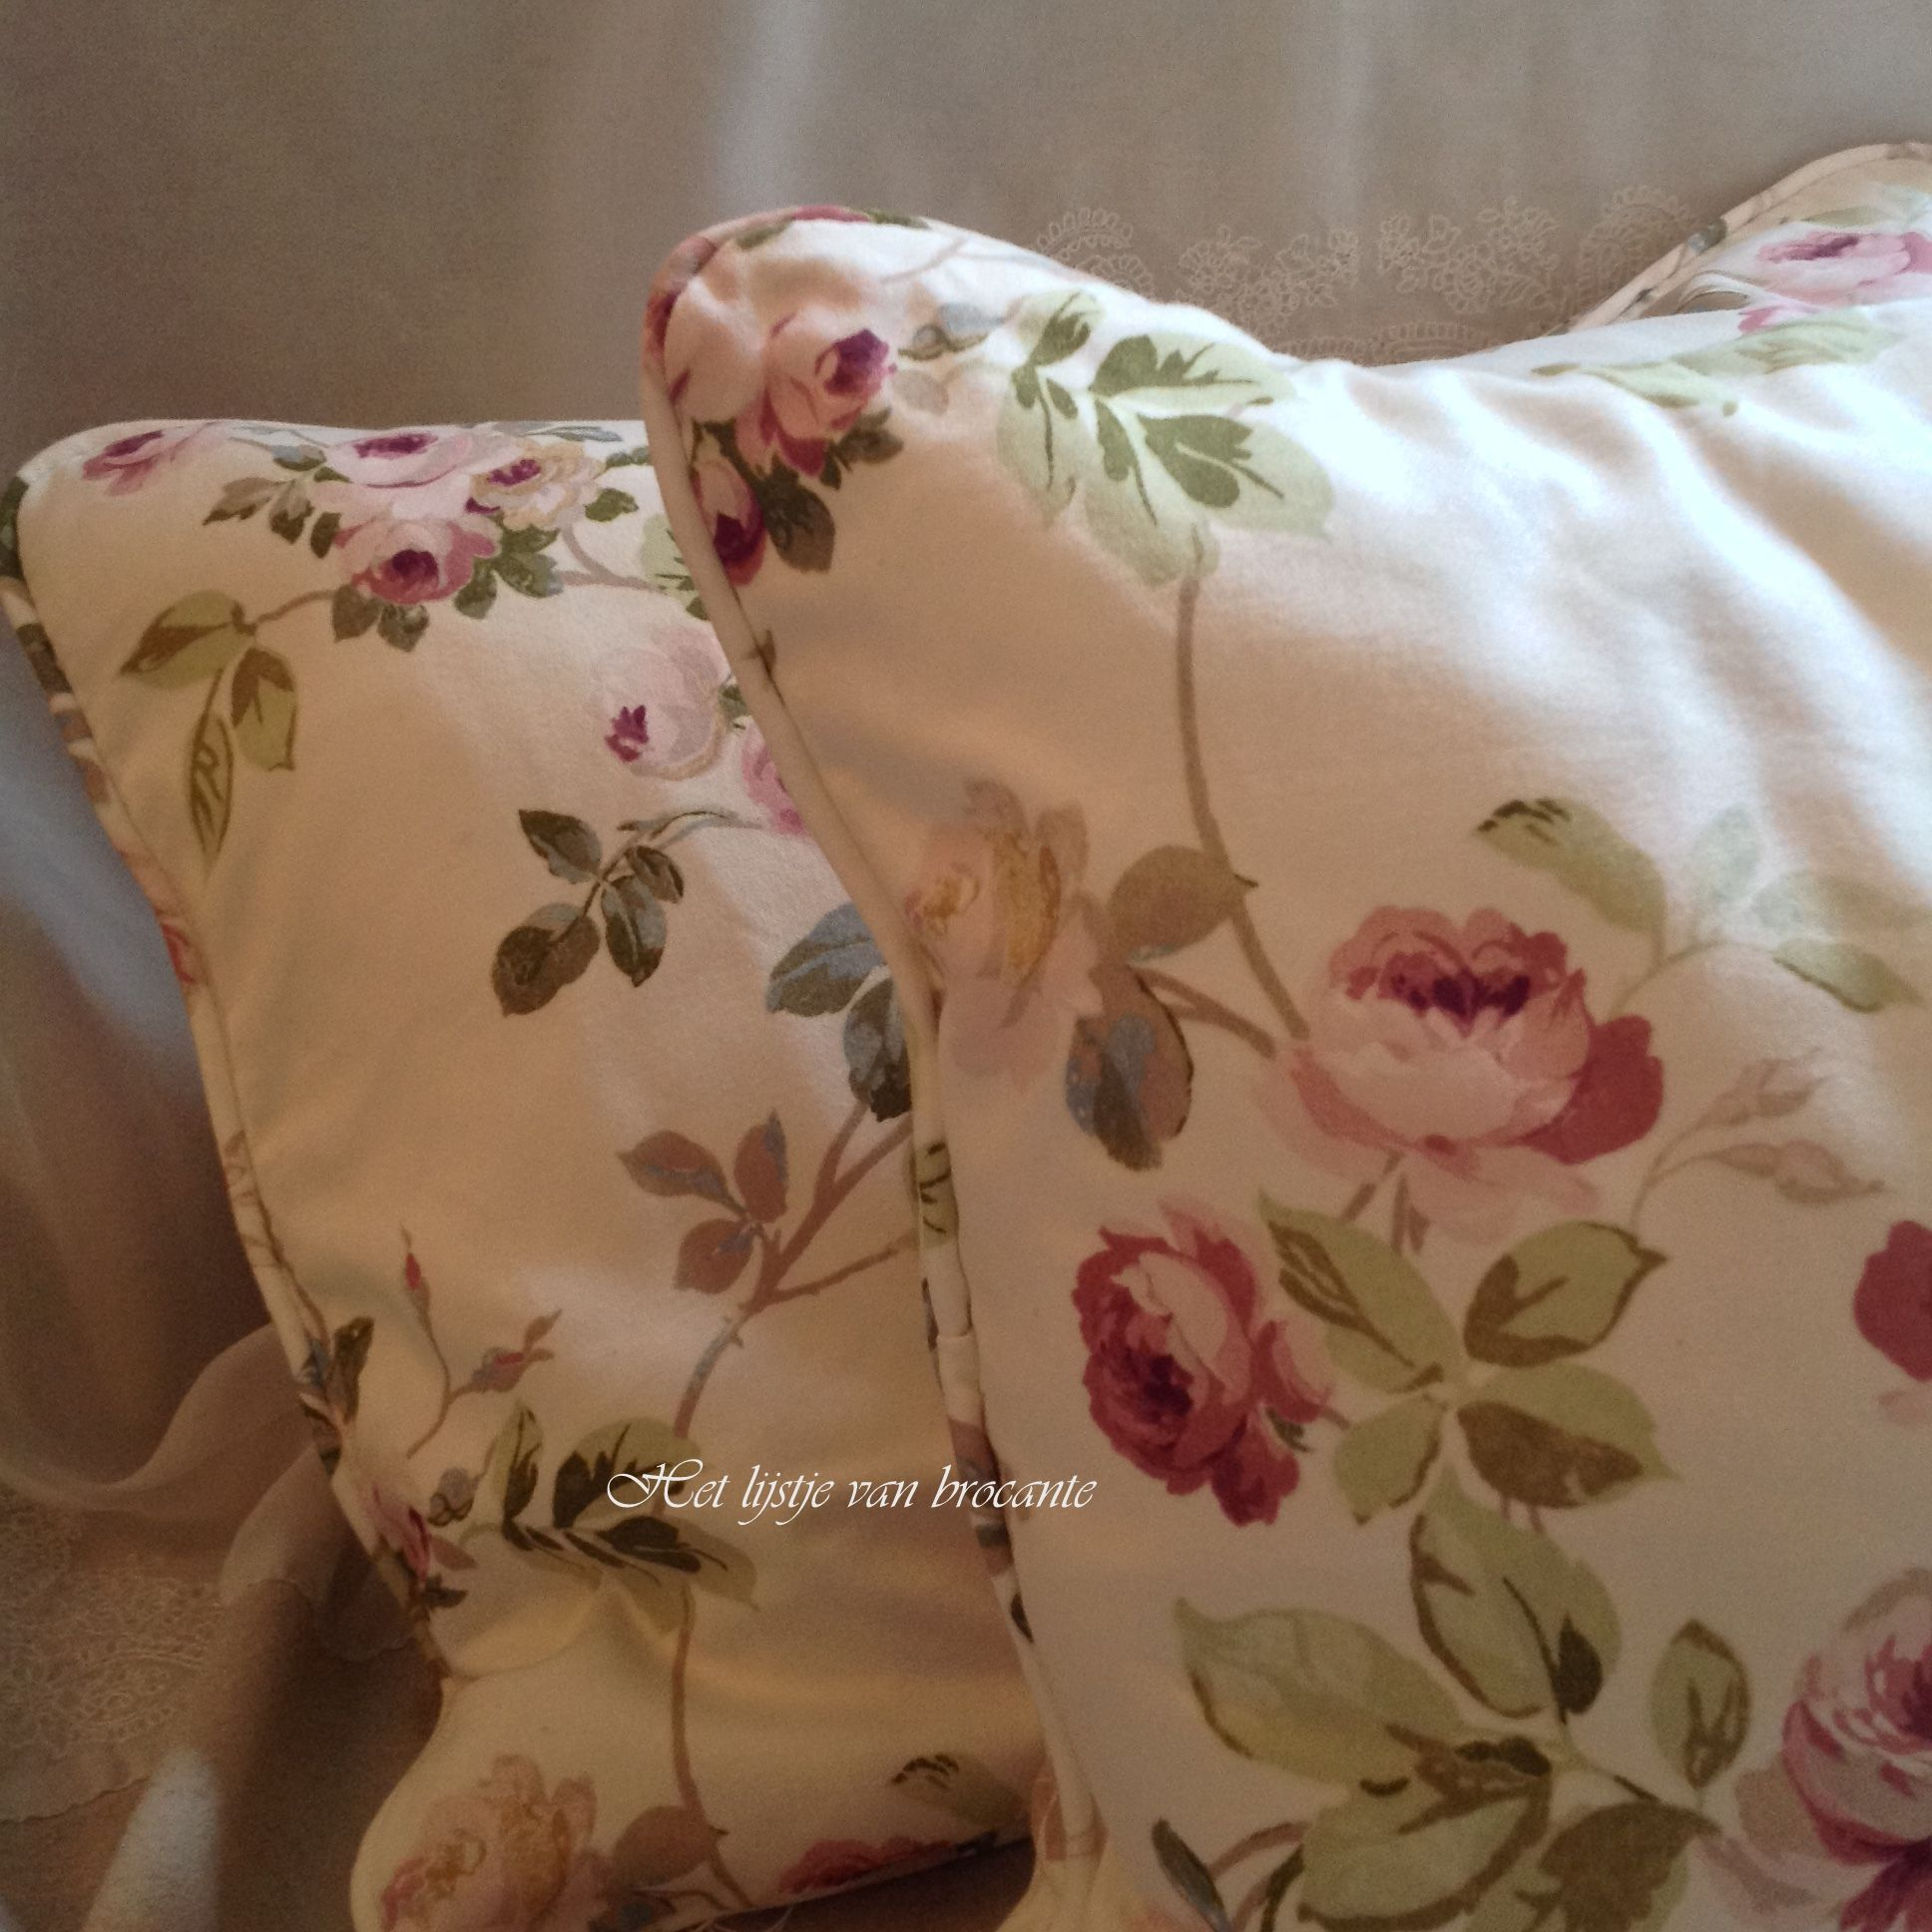 Möbelstoffe Landhausstil Beautiful English Rose Pillows Available In My Shop Pillows